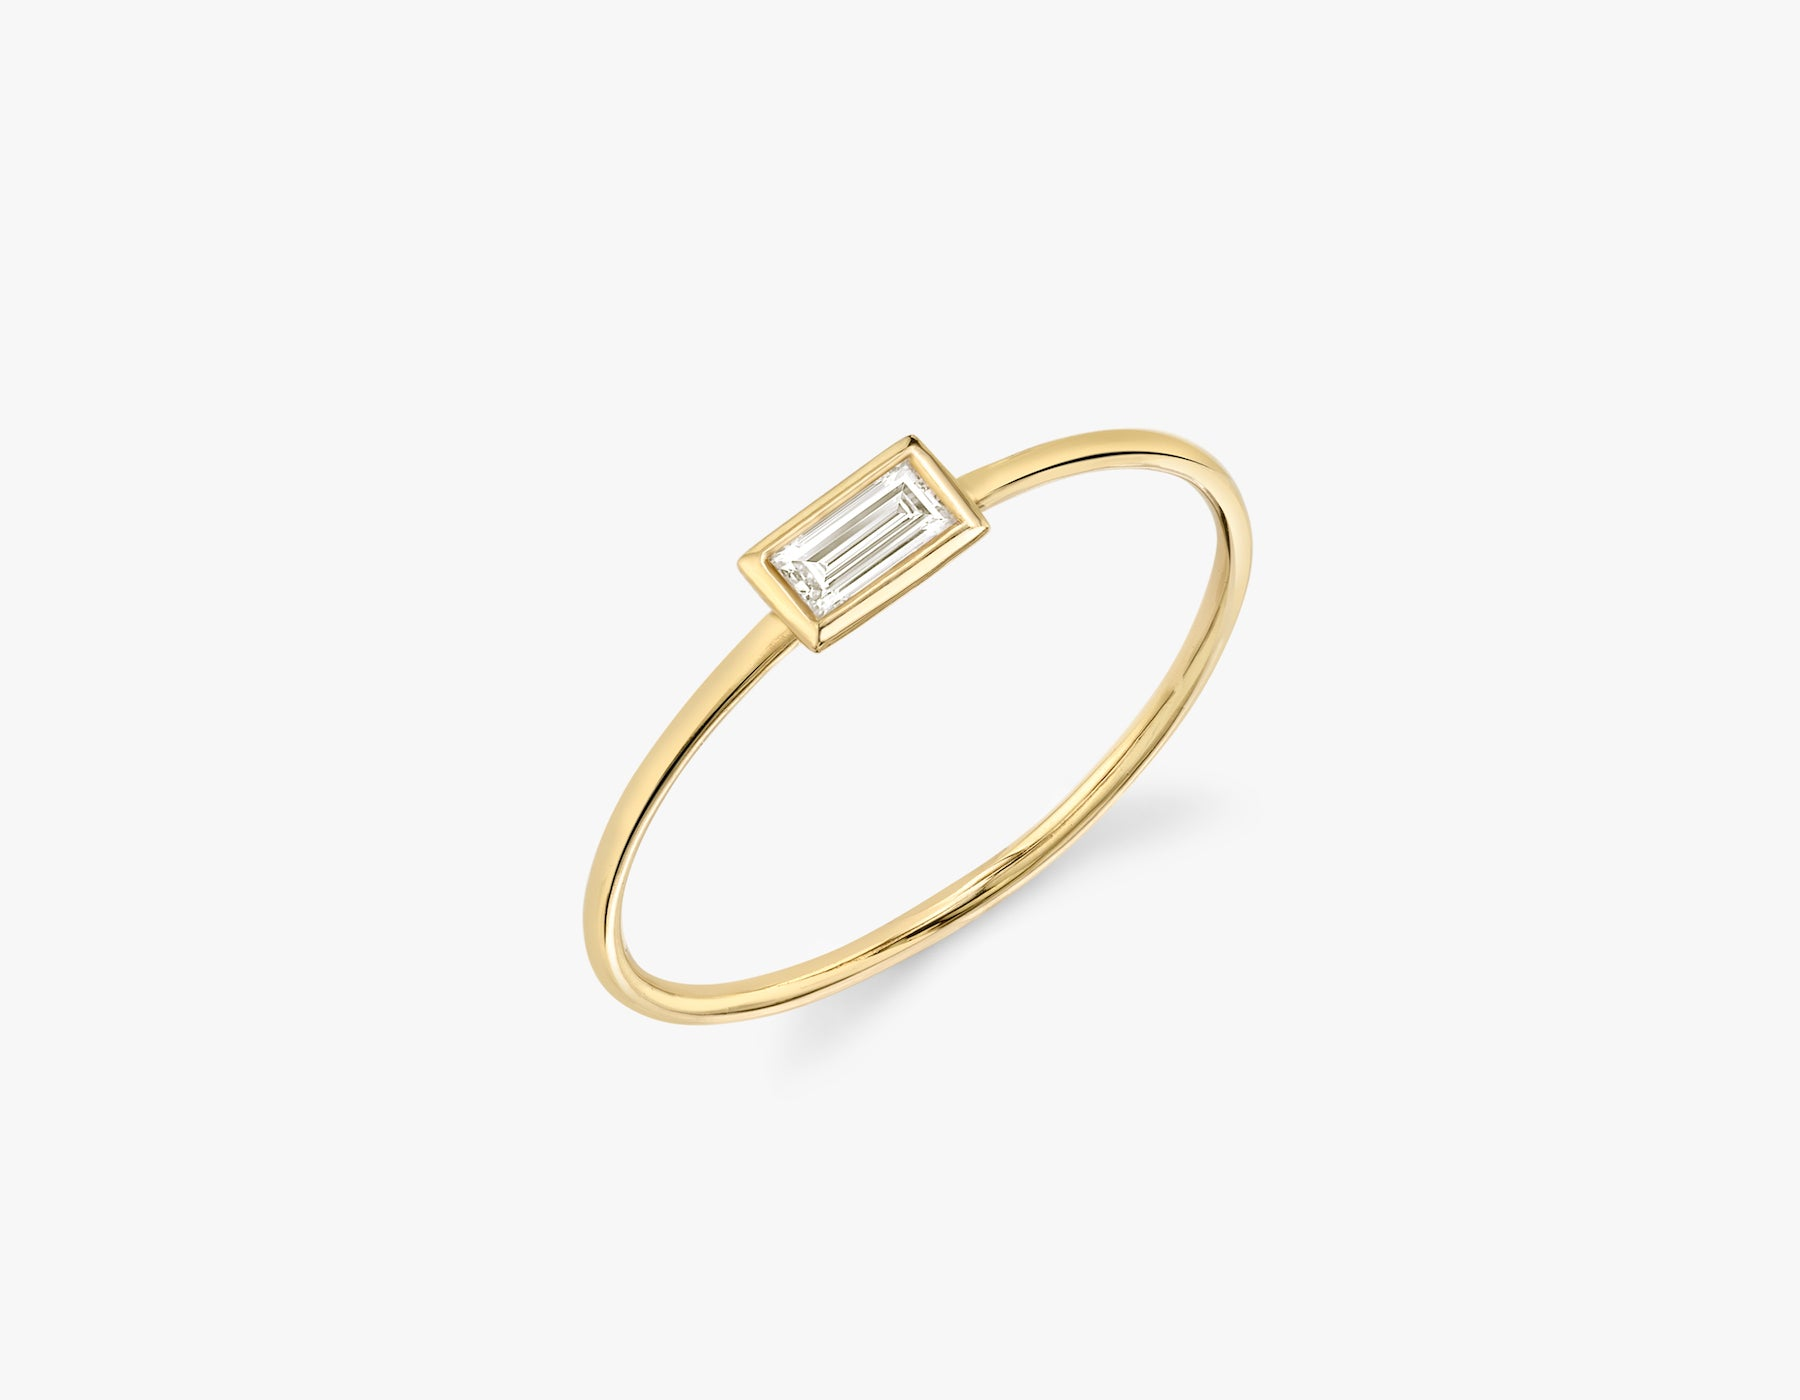 Vrai simple minimalist Baguette Diamond Bezel Ring, 14K Yellow Gold